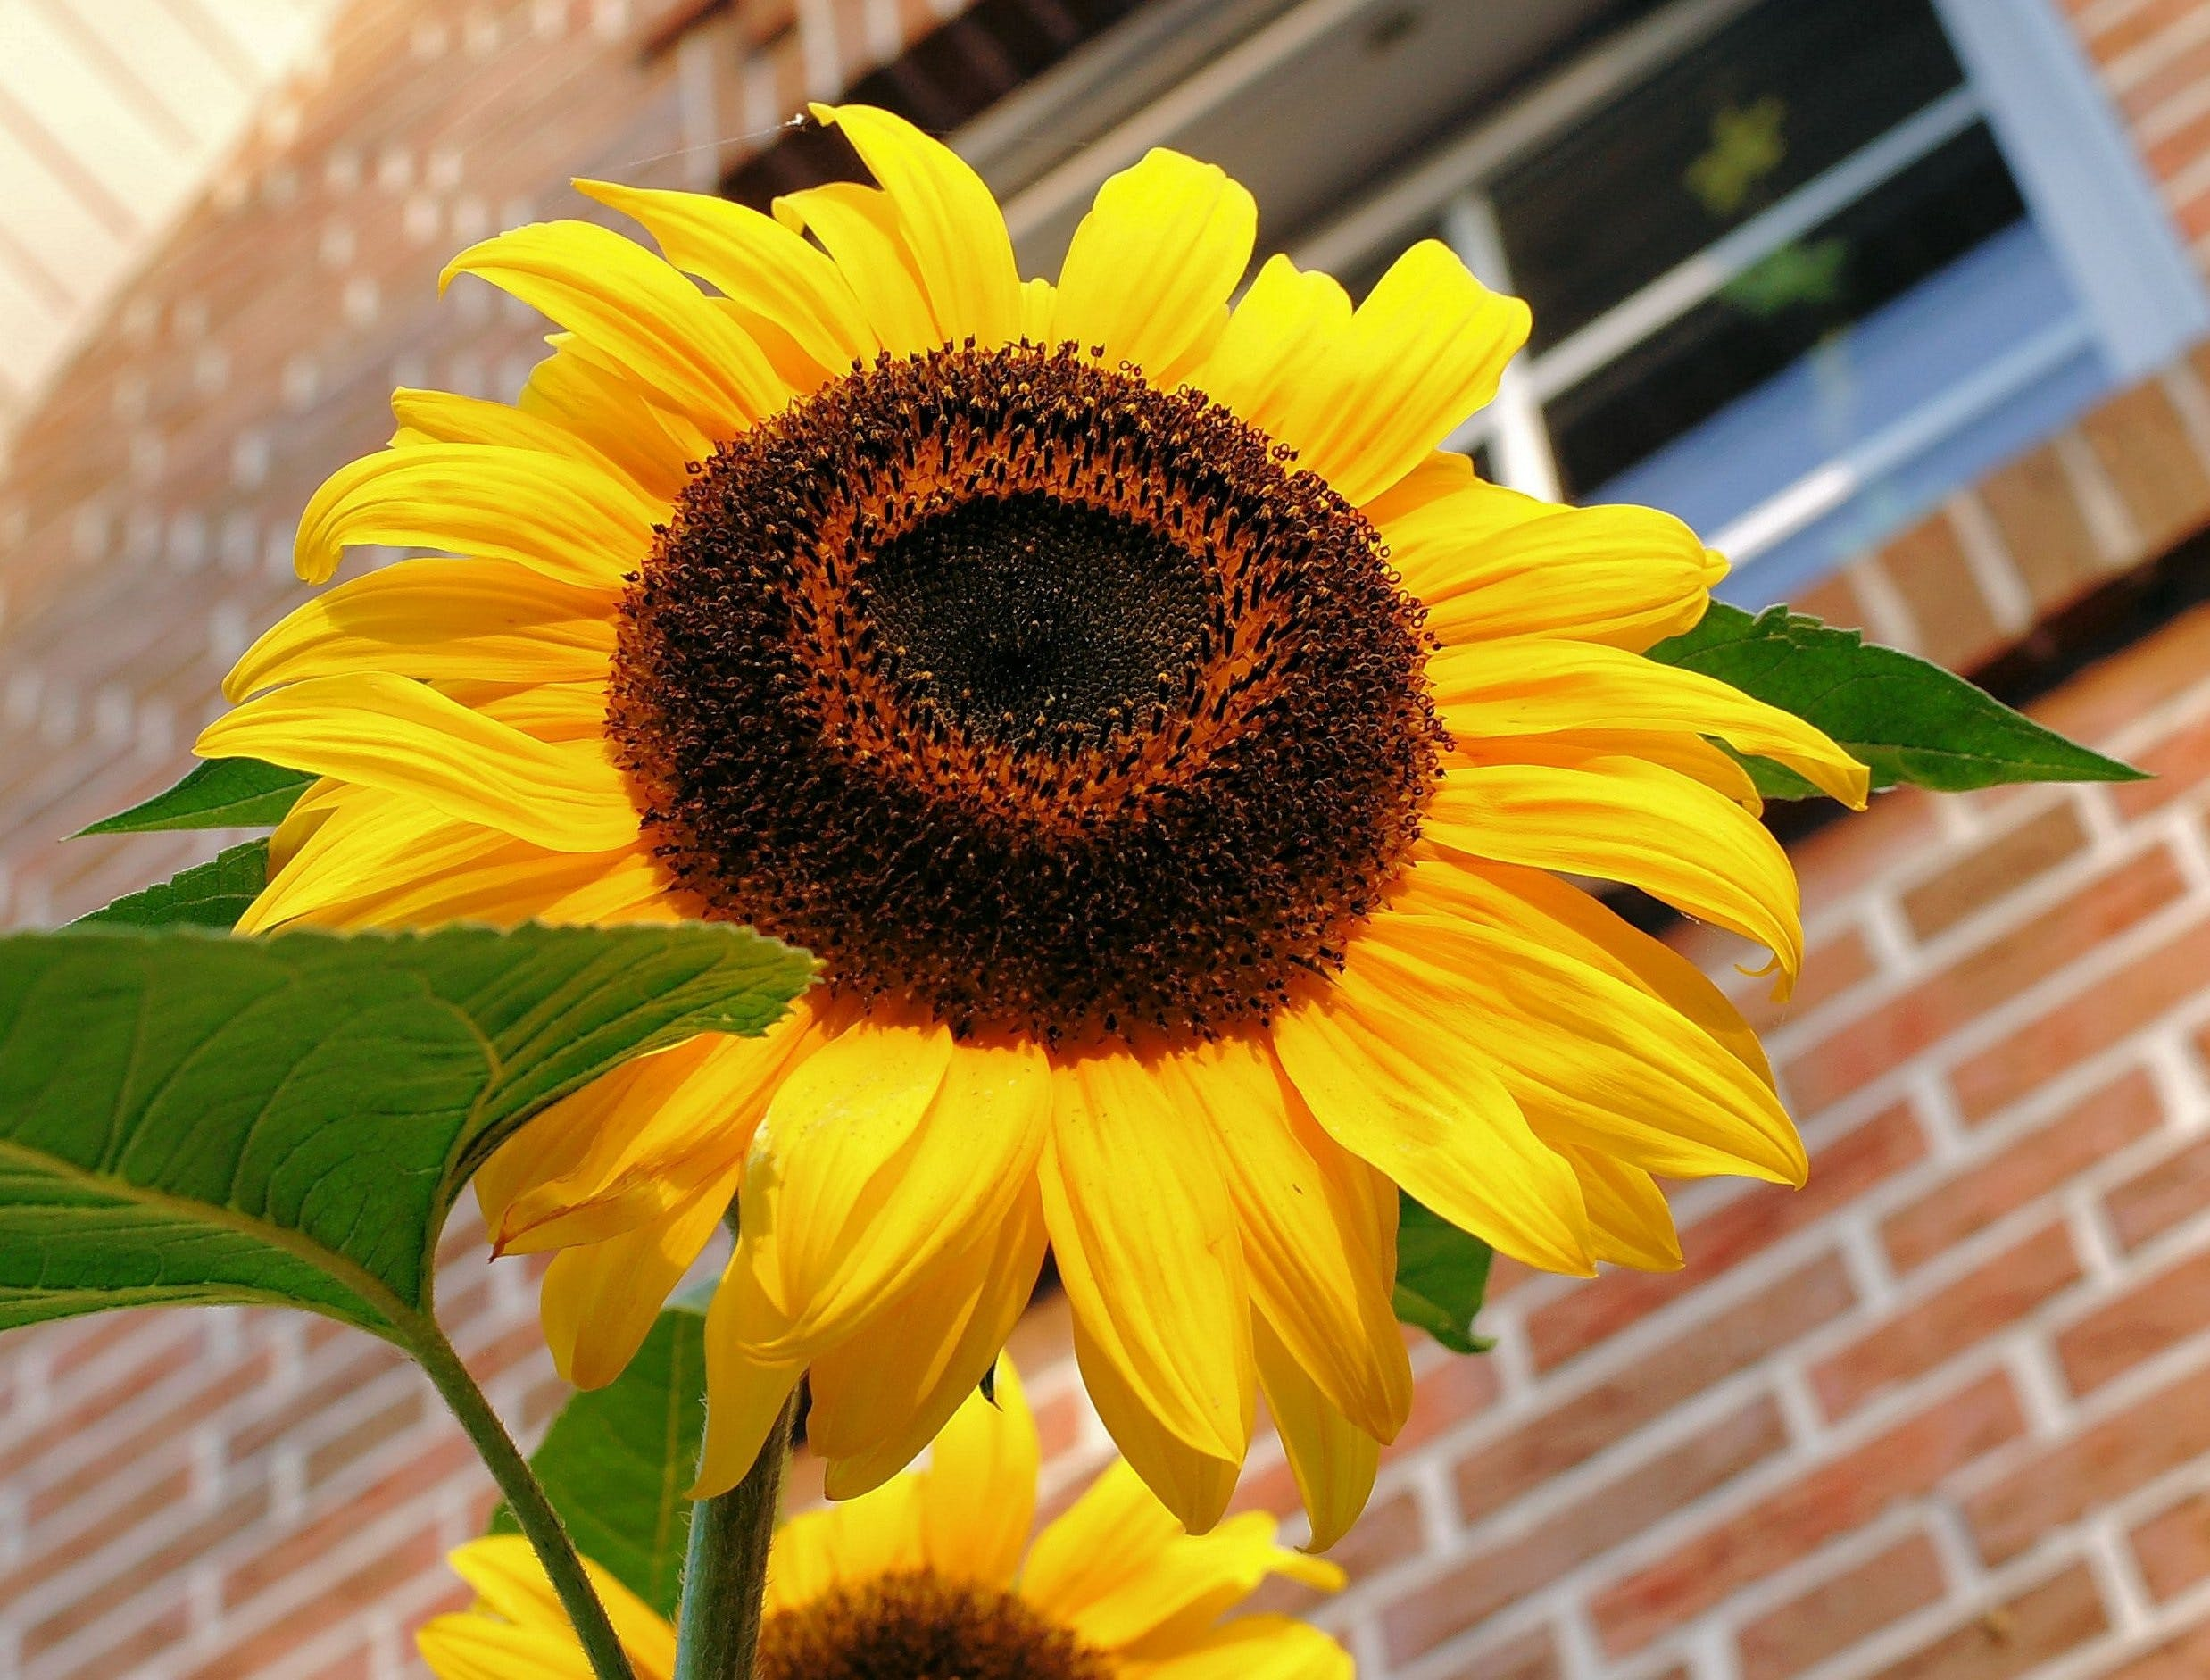 Close Photography of Yellow Sunflower